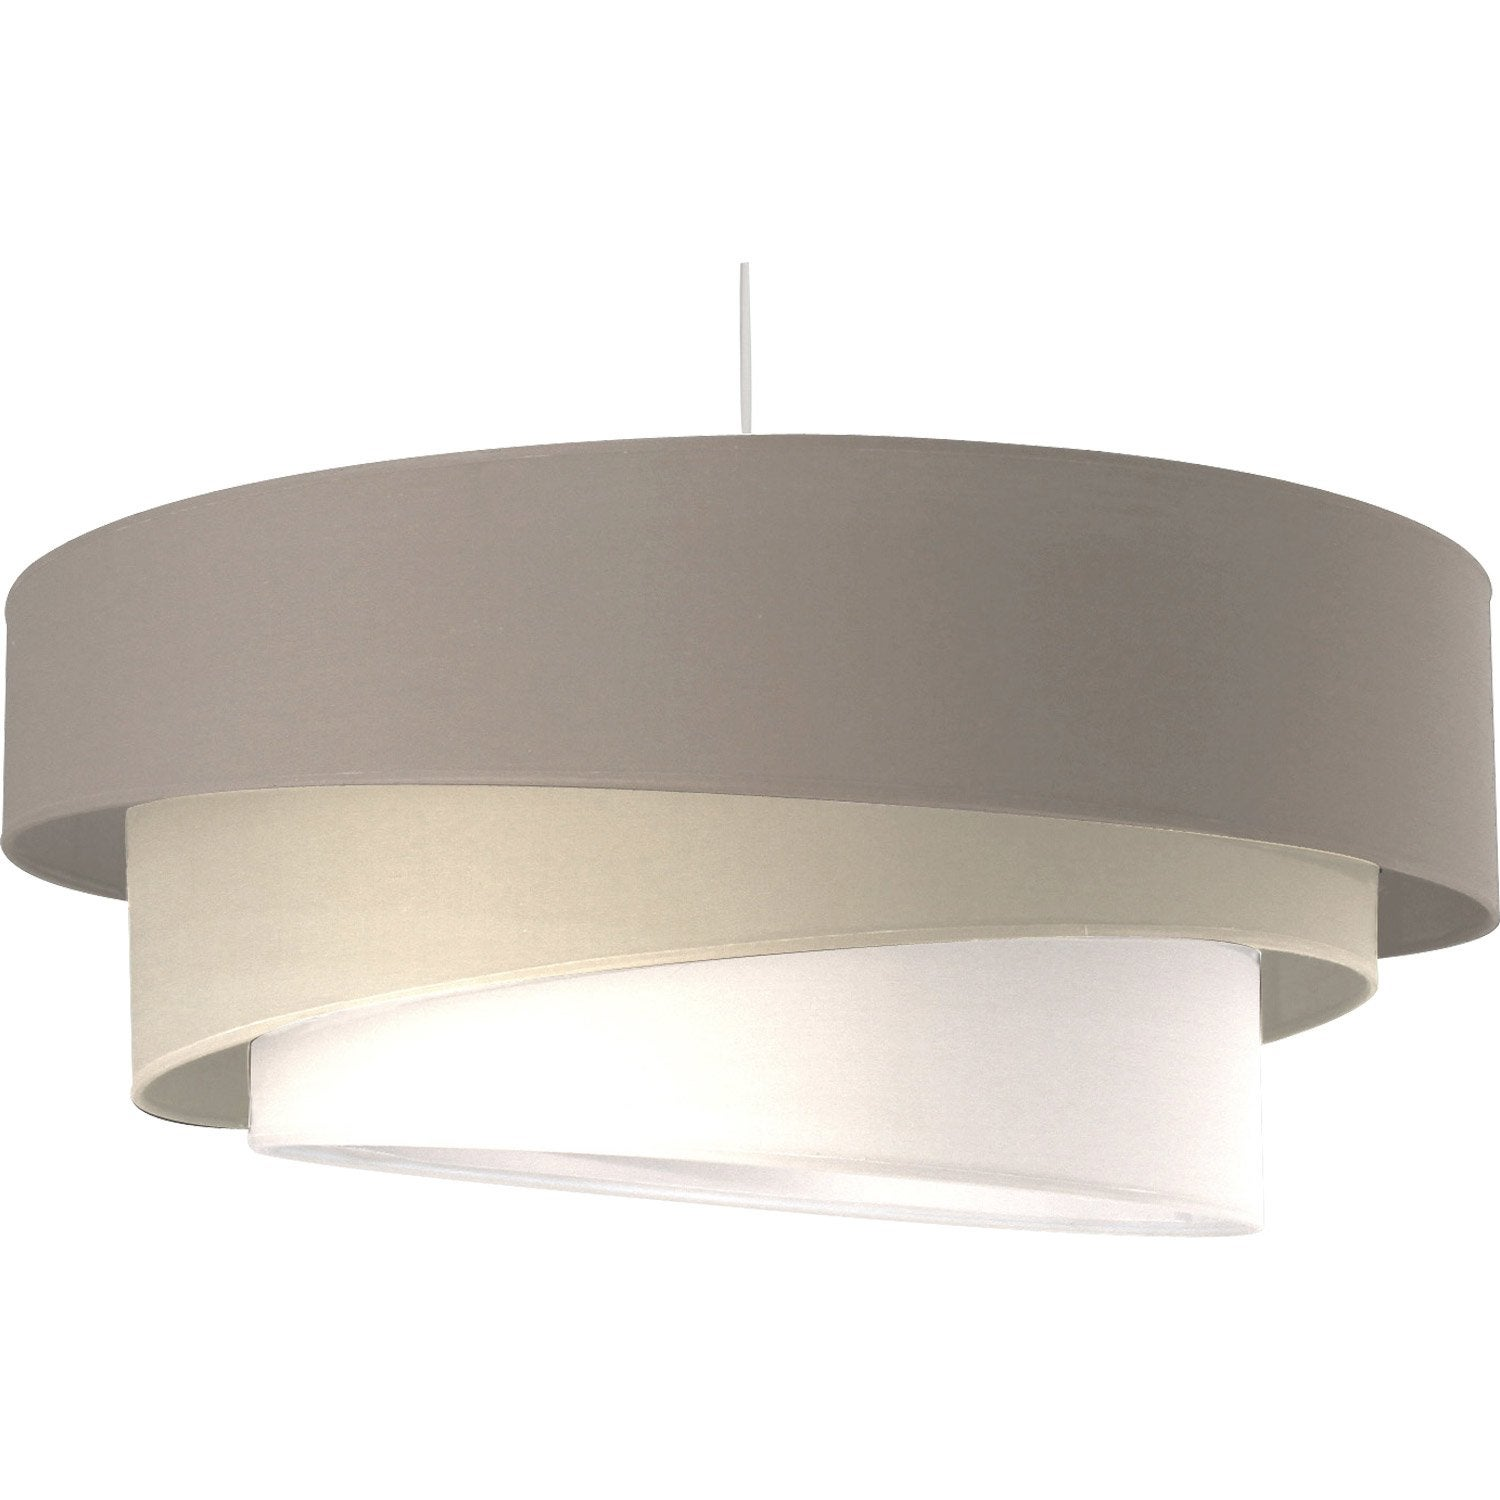 Suspension moderne ionos coton gris et blanc 1 x 60 w for Leroy merlin luminaire